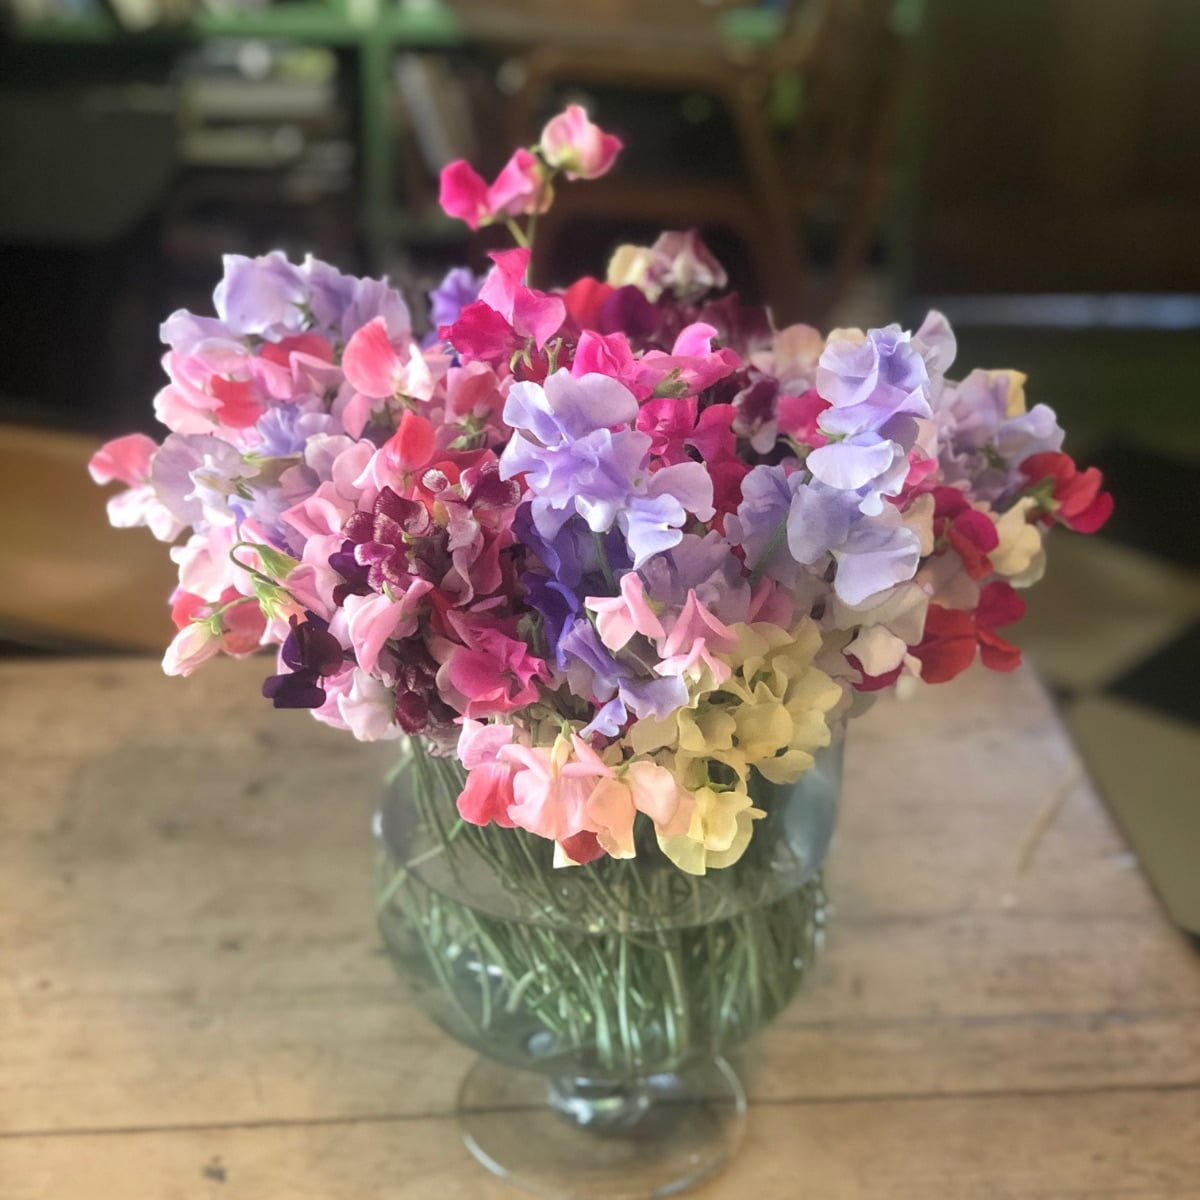 Worton Kitchen Garden sweet peas in a vase